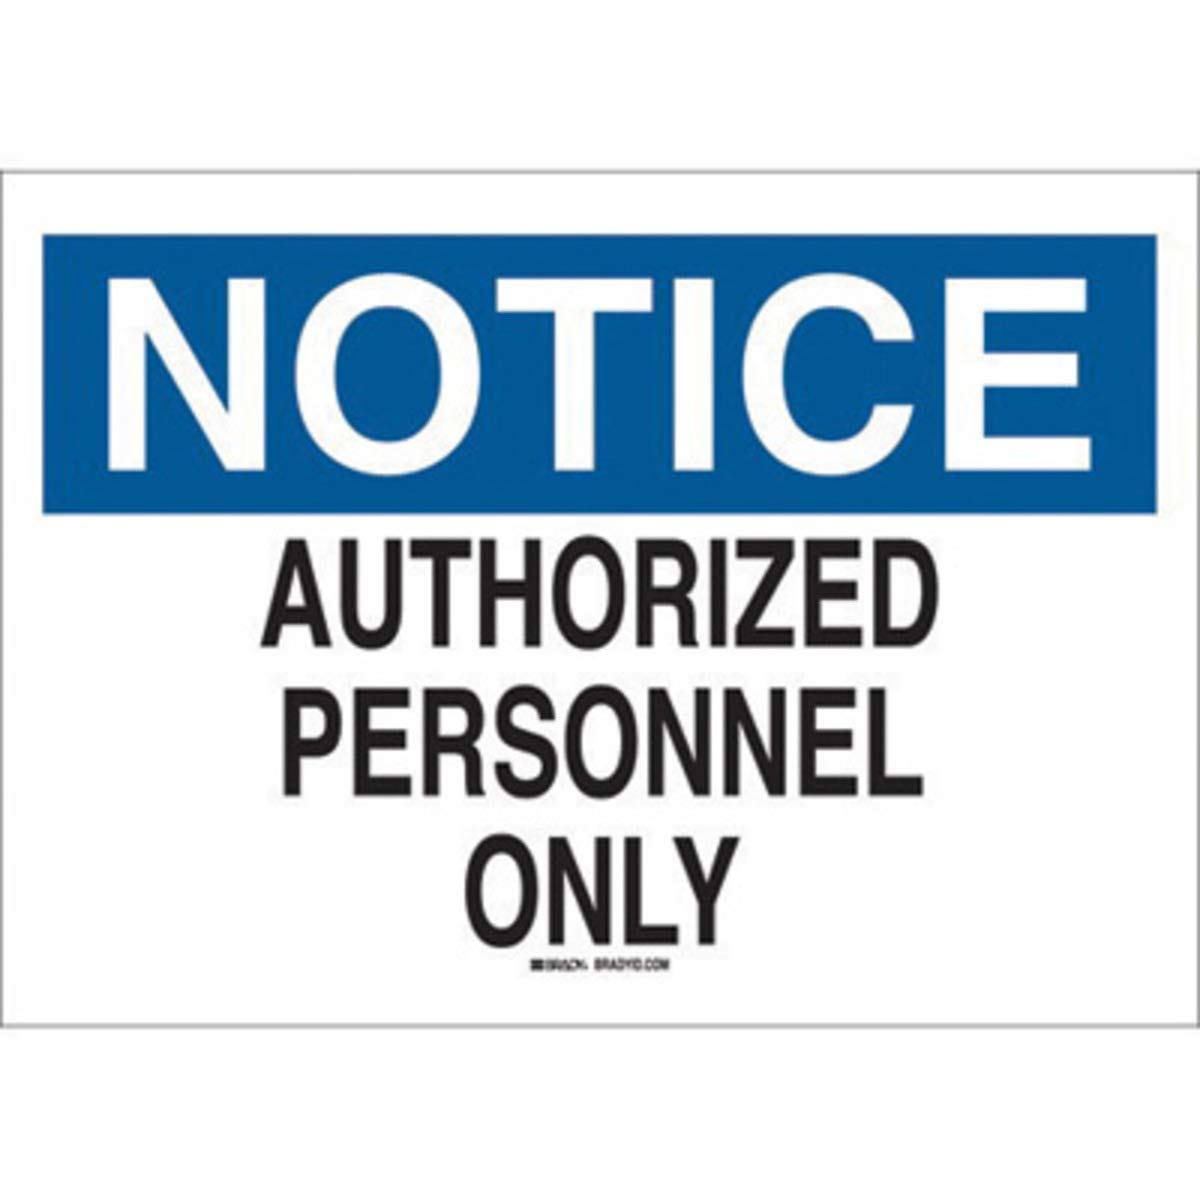 Brady 10'' X 14'' X 1/10'' Black/Blue On White .0984'' B-120 Fiberglass Admittance Sign''NOTICE AUTHORIZED PERSONNEL ONLY''